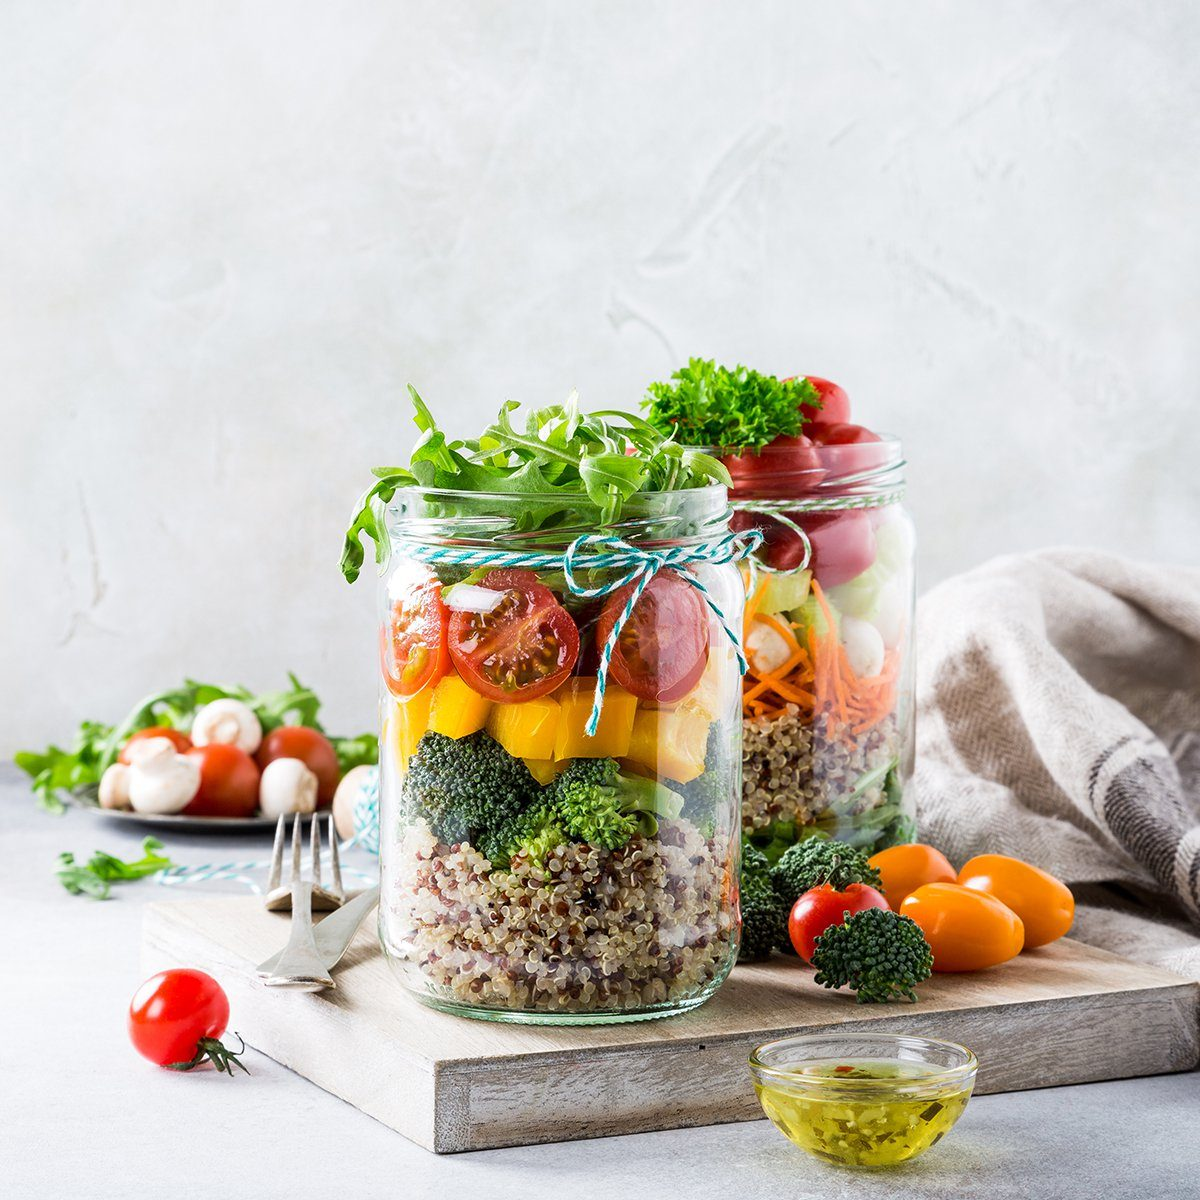 Homemade salad in glass jar with quinoa and vegetables.